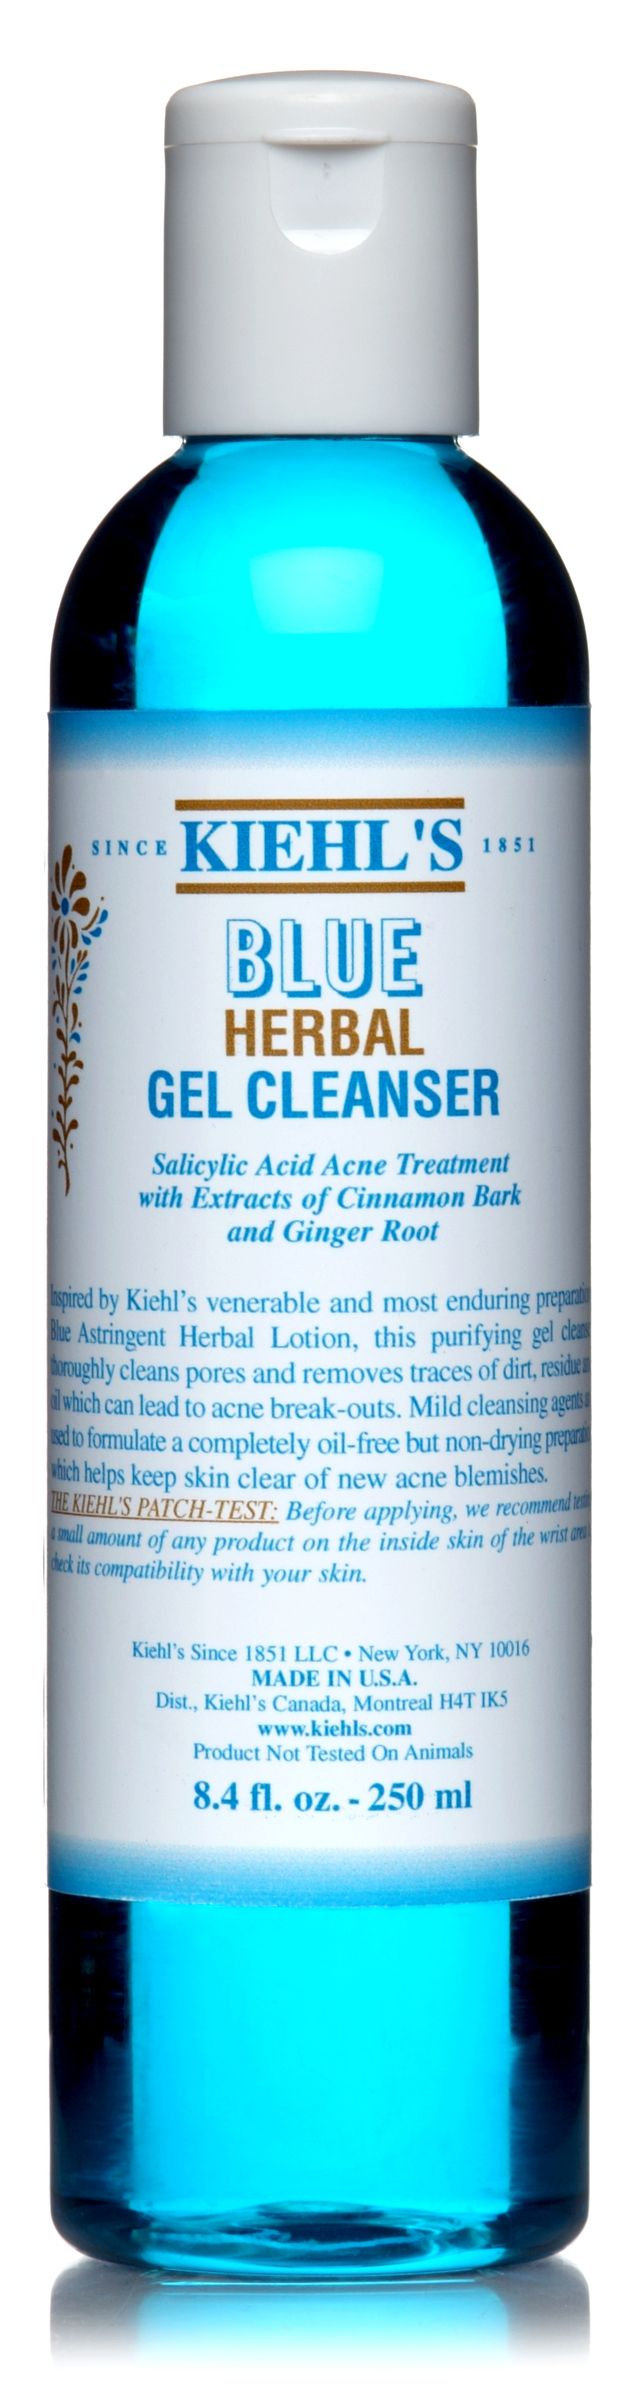 Blue Herbal Gel Cleanser, 250ml